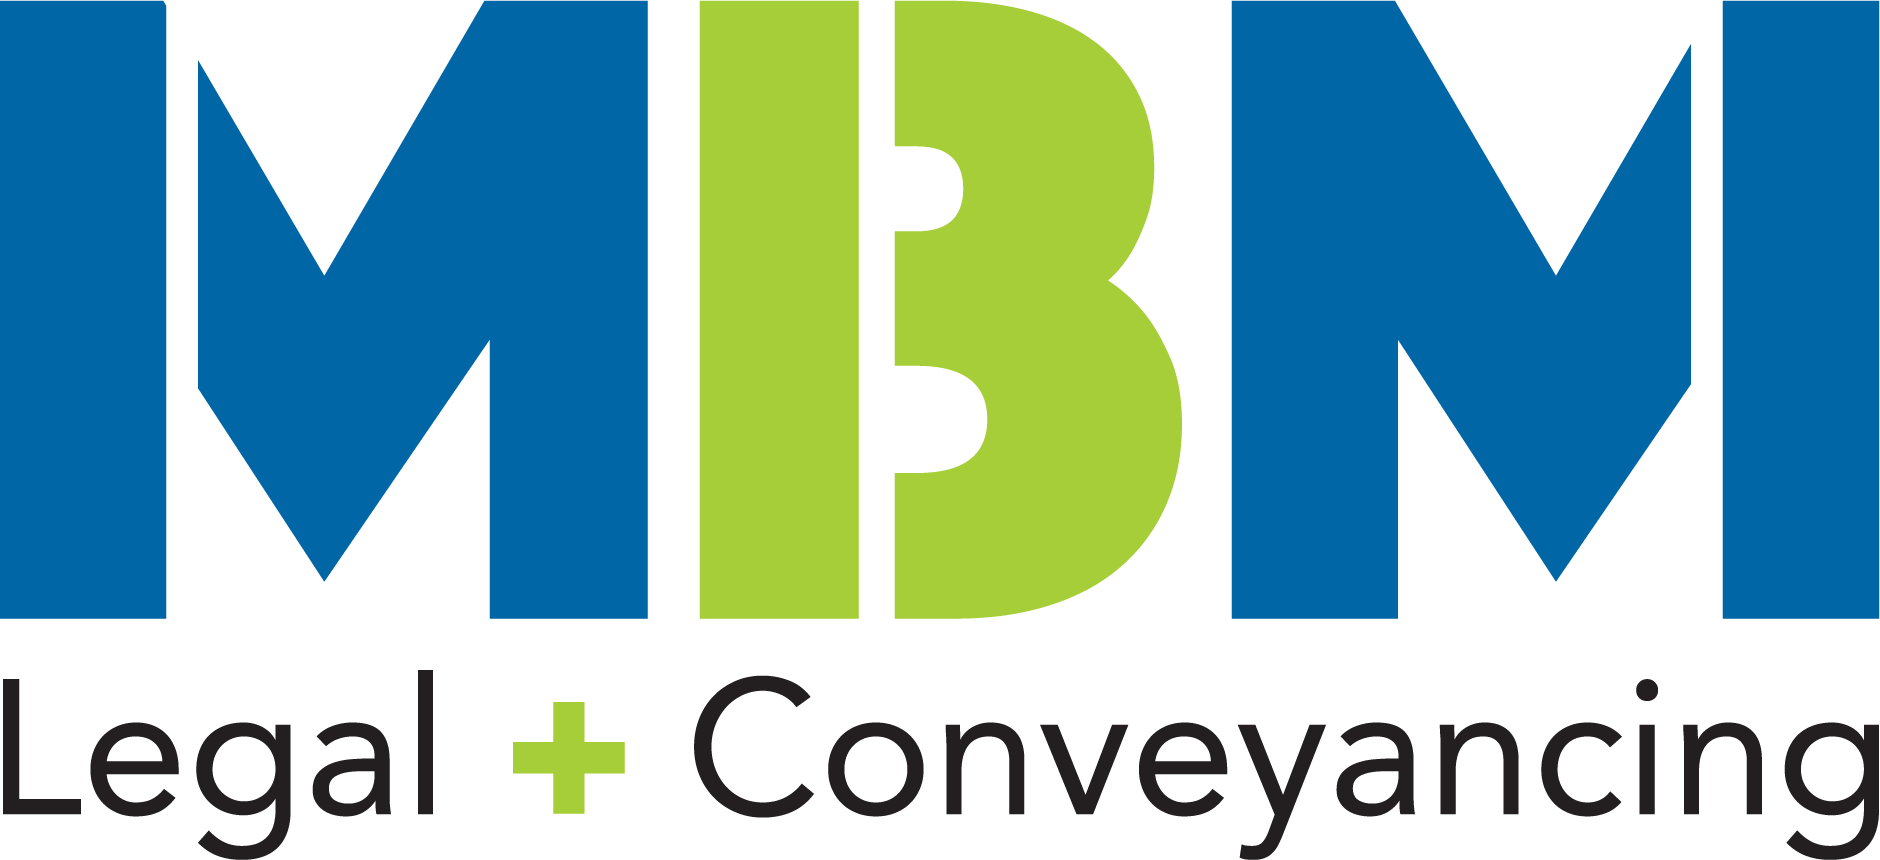 MBM Legal + Conveyancing